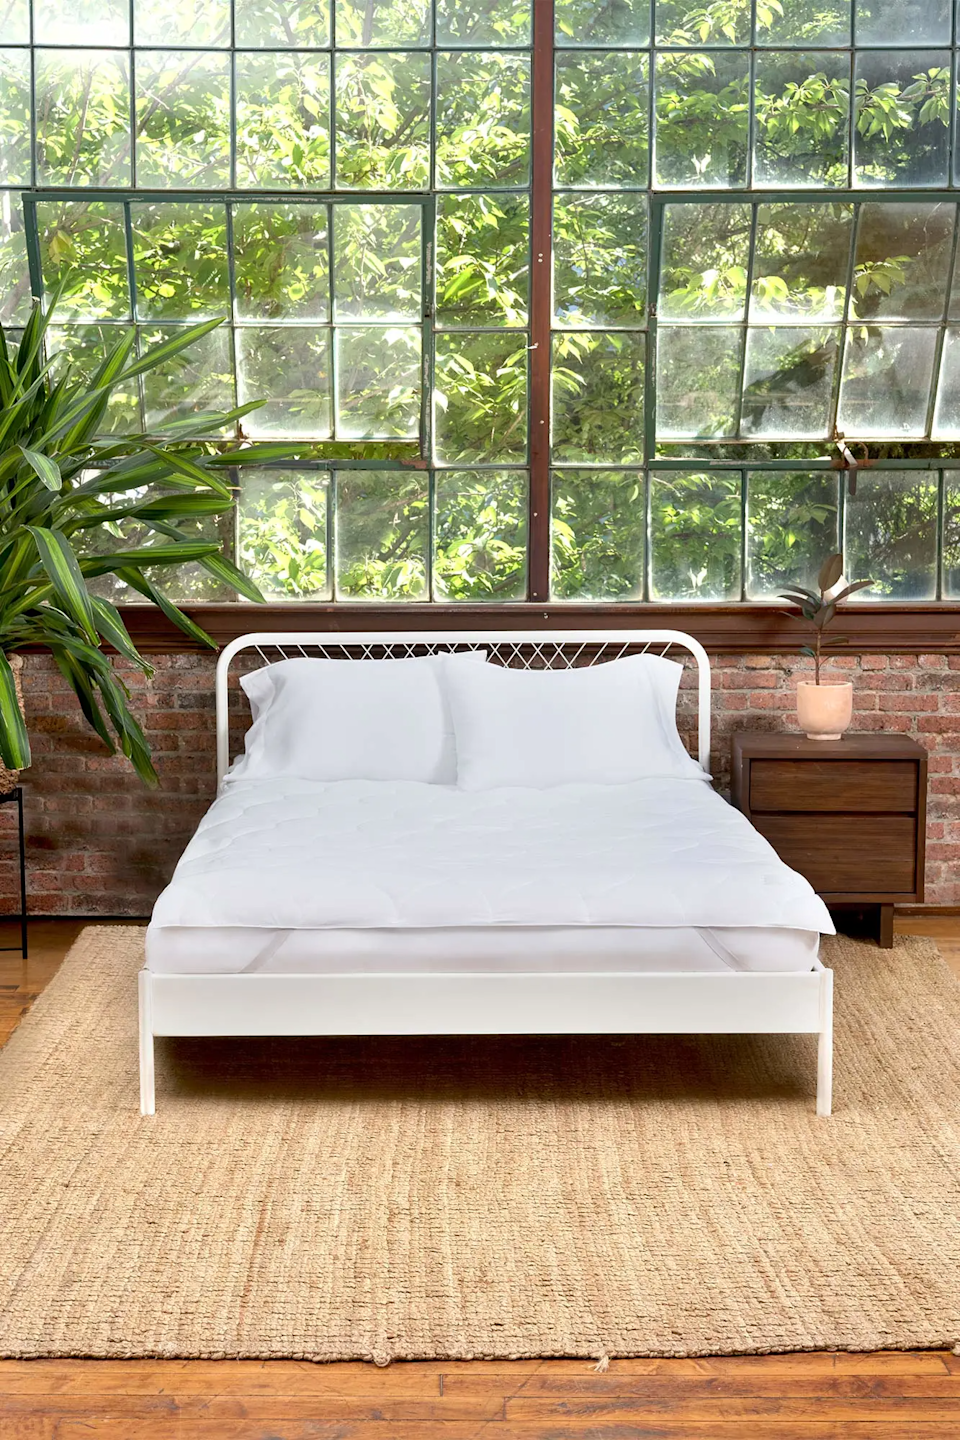 """<h3>Buffy Plushy Mattress Protector</h3><br><strong>Best For:</strong> <strong>A Sweat-Free Sleep</strong><br>Buffy's mattress topper is made of super soft eucalyptus fabric and filled with 100% recycled fibers. Reviewers rave about its breathability, temperature regulating properties, and simple design. <br><br><strong>The Hype: 4.8 out of 5 stars</strong><br><br><strong>Sleepers Say:</strong> """"I love this mattress protector. It is super comfy and I look forward to getting into bed each night. I am never sweaty, it is super breathable. Highly recommend this product. Amazing!"""" <em>– Stacey F., Buffy Reviewer</em><br><br><em>Shop <strong><a href=""""https://buffy.co/"""" rel=""""nofollow noopener"""" target=""""_blank"""" data-ylk=""""slk:Buffy"""" class=""""link rapid-noclick-resp"""">Buffy</a></strong></em><br><br><strong>Buffy</strong> Plushy Mattress Protector, $, available at <a href=""""https://go.skimresources.com/?id=30283X879131&url=https%3A%2F%2Fbuffy.co%2Fproducts%2Fmattress-protector"""" rel=""""nofollow noopener"""" target=""""_blank"""" data-ylk=""""slk:Buffy"""" class=""""link rapid-noclick-resp"""">Buffy</a>"""